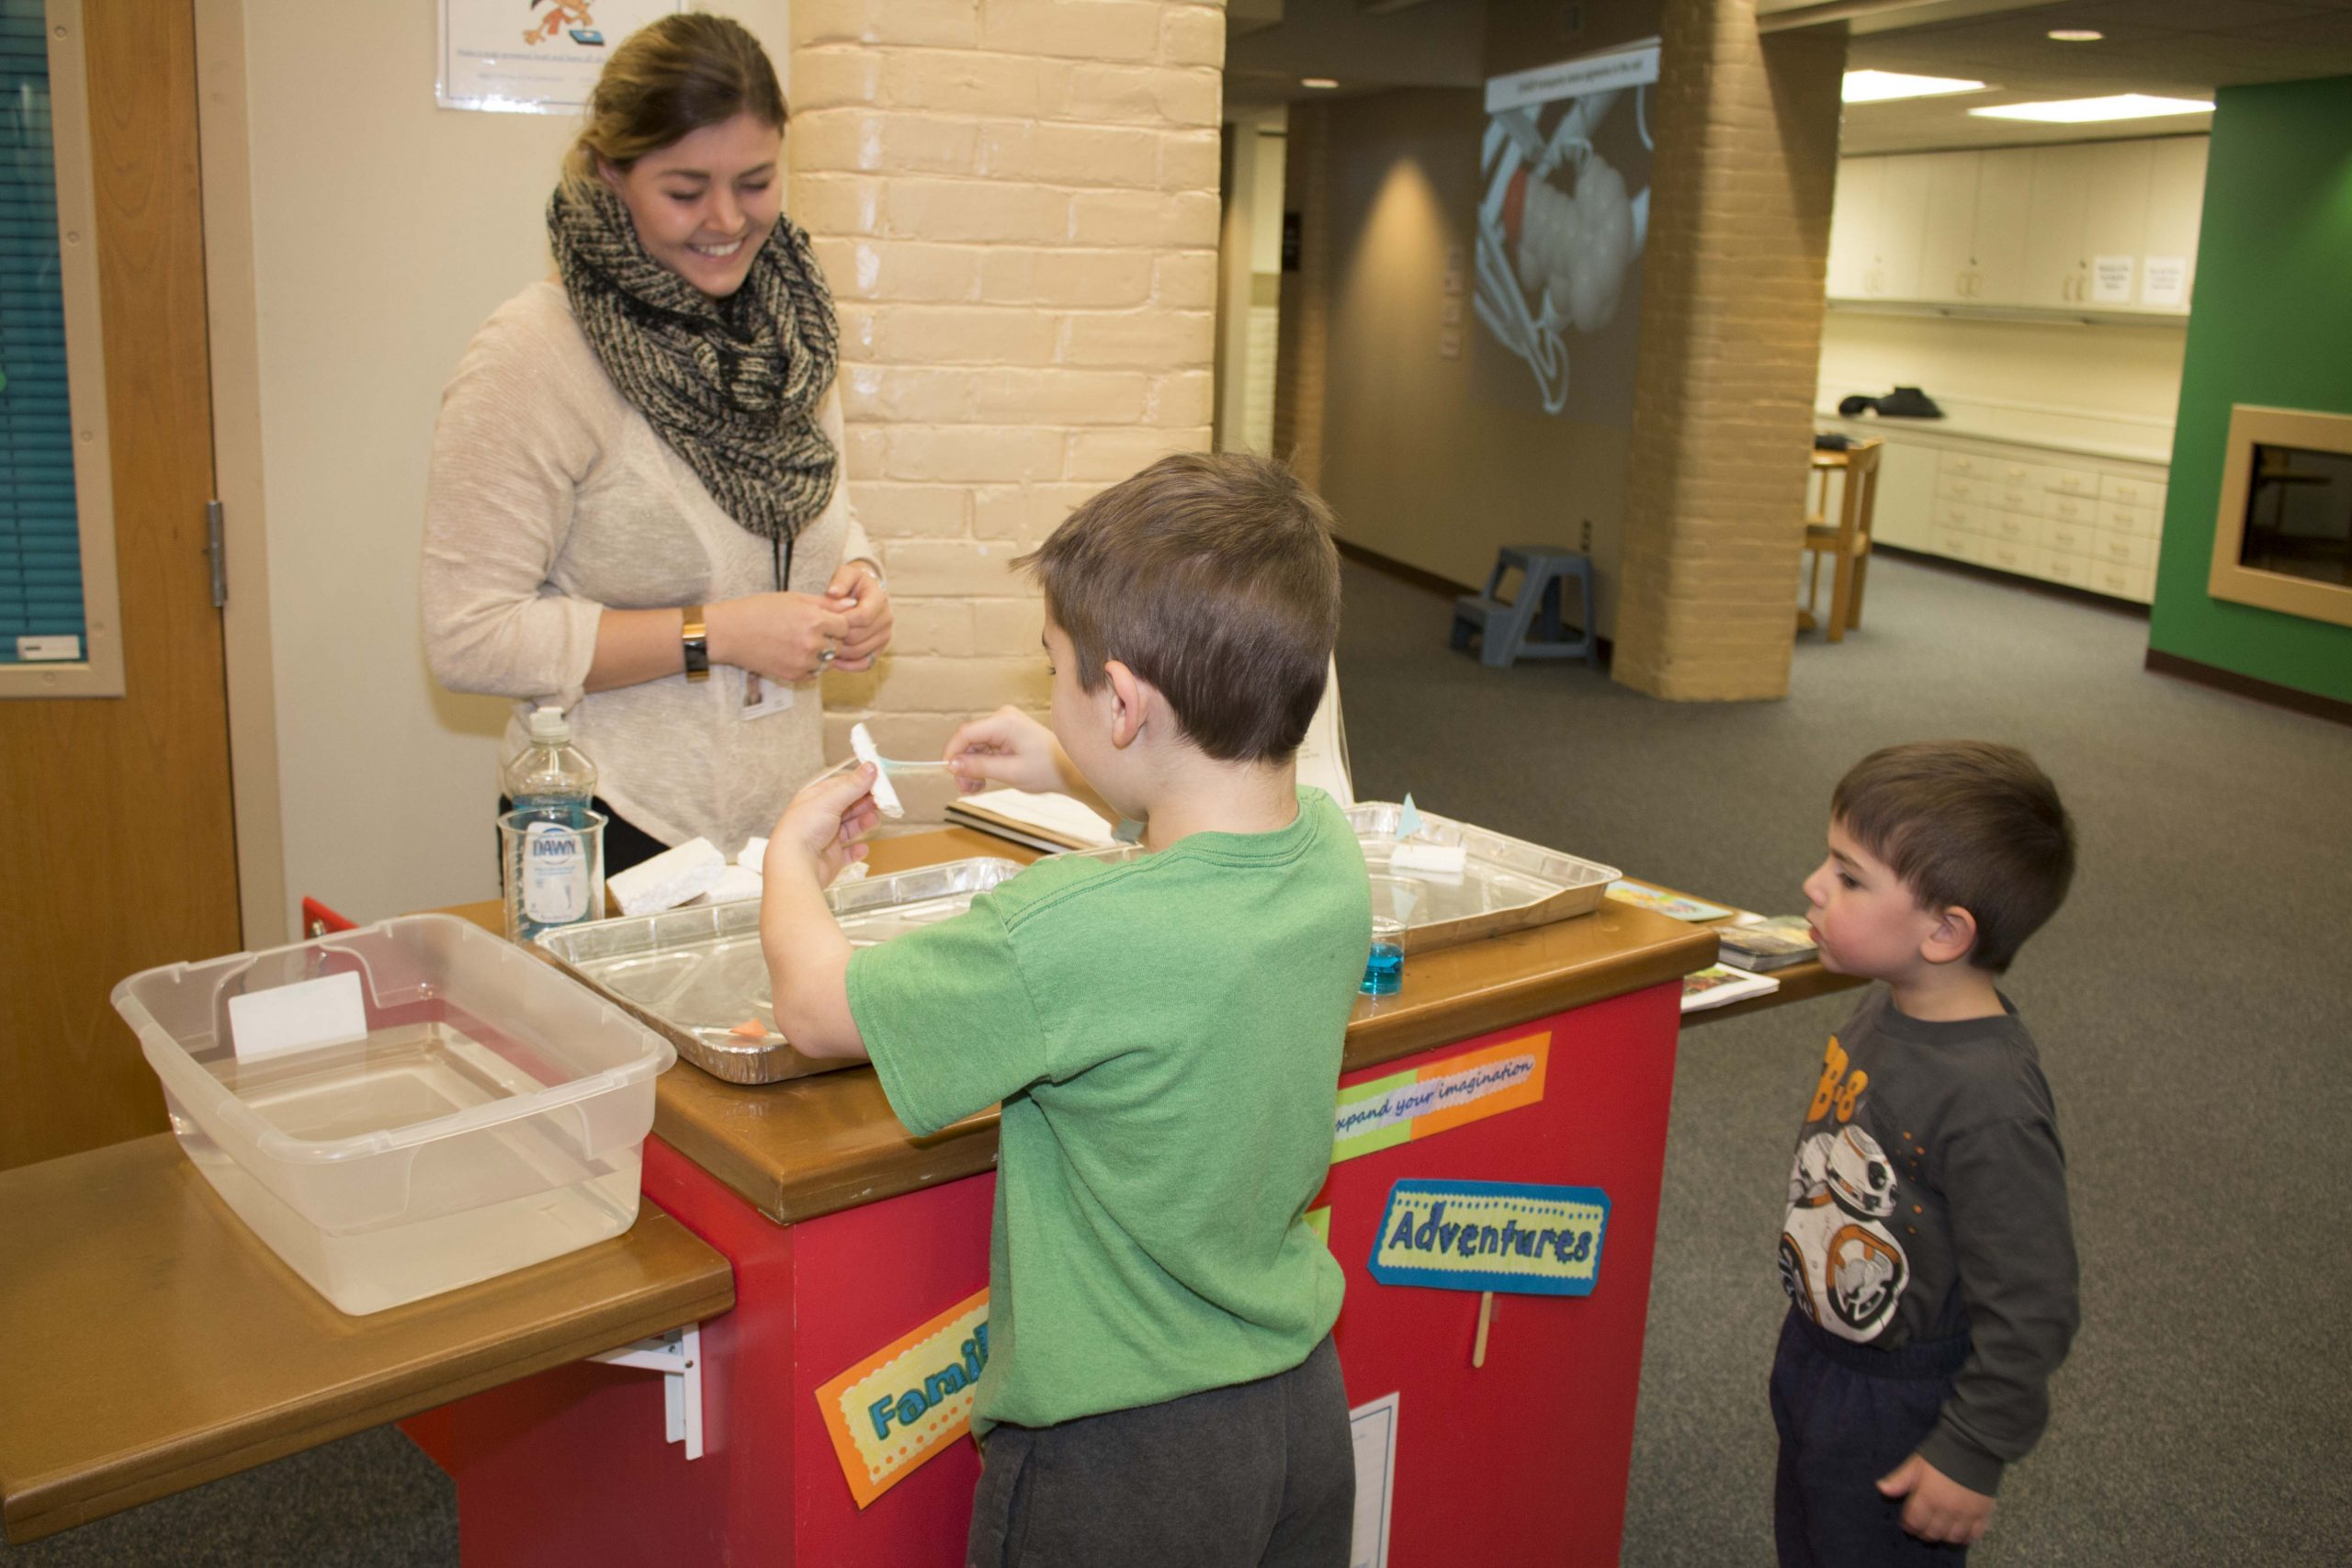 Volunteer Interacts With Two Young Boys In The Science Museum